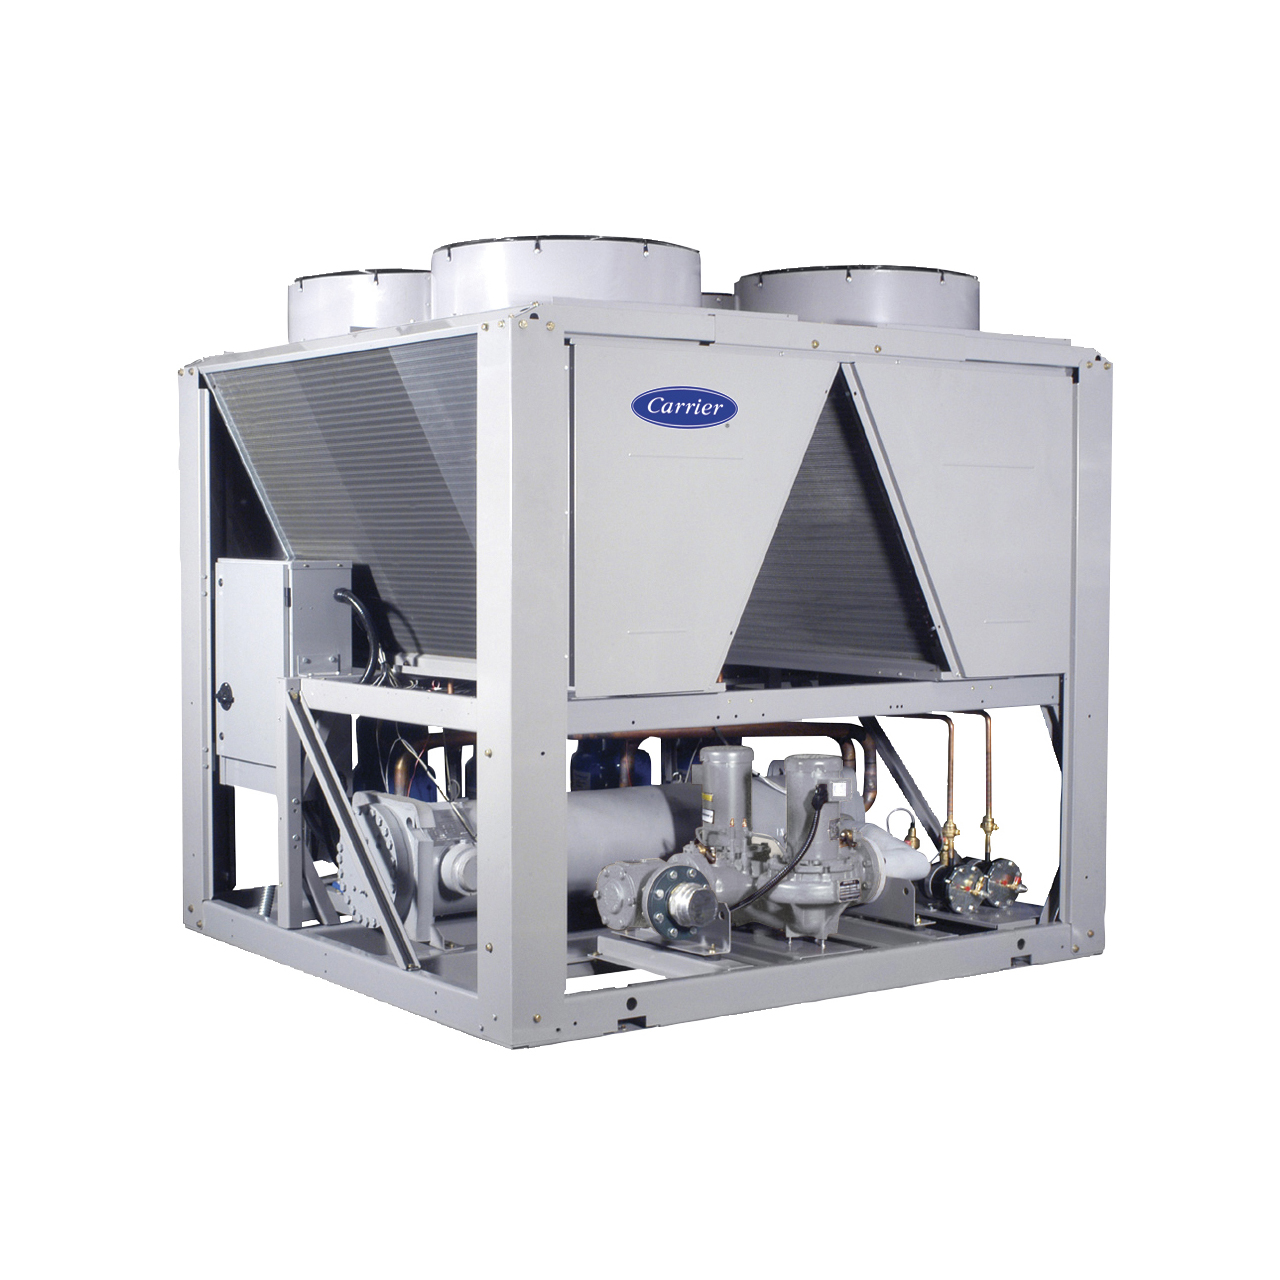 The AquaSnap® 30RB chiller is an effective all-in-one package that is easy to install and easy to own. The chiller costs less to purchase and install and then operates quietly and efficiently.